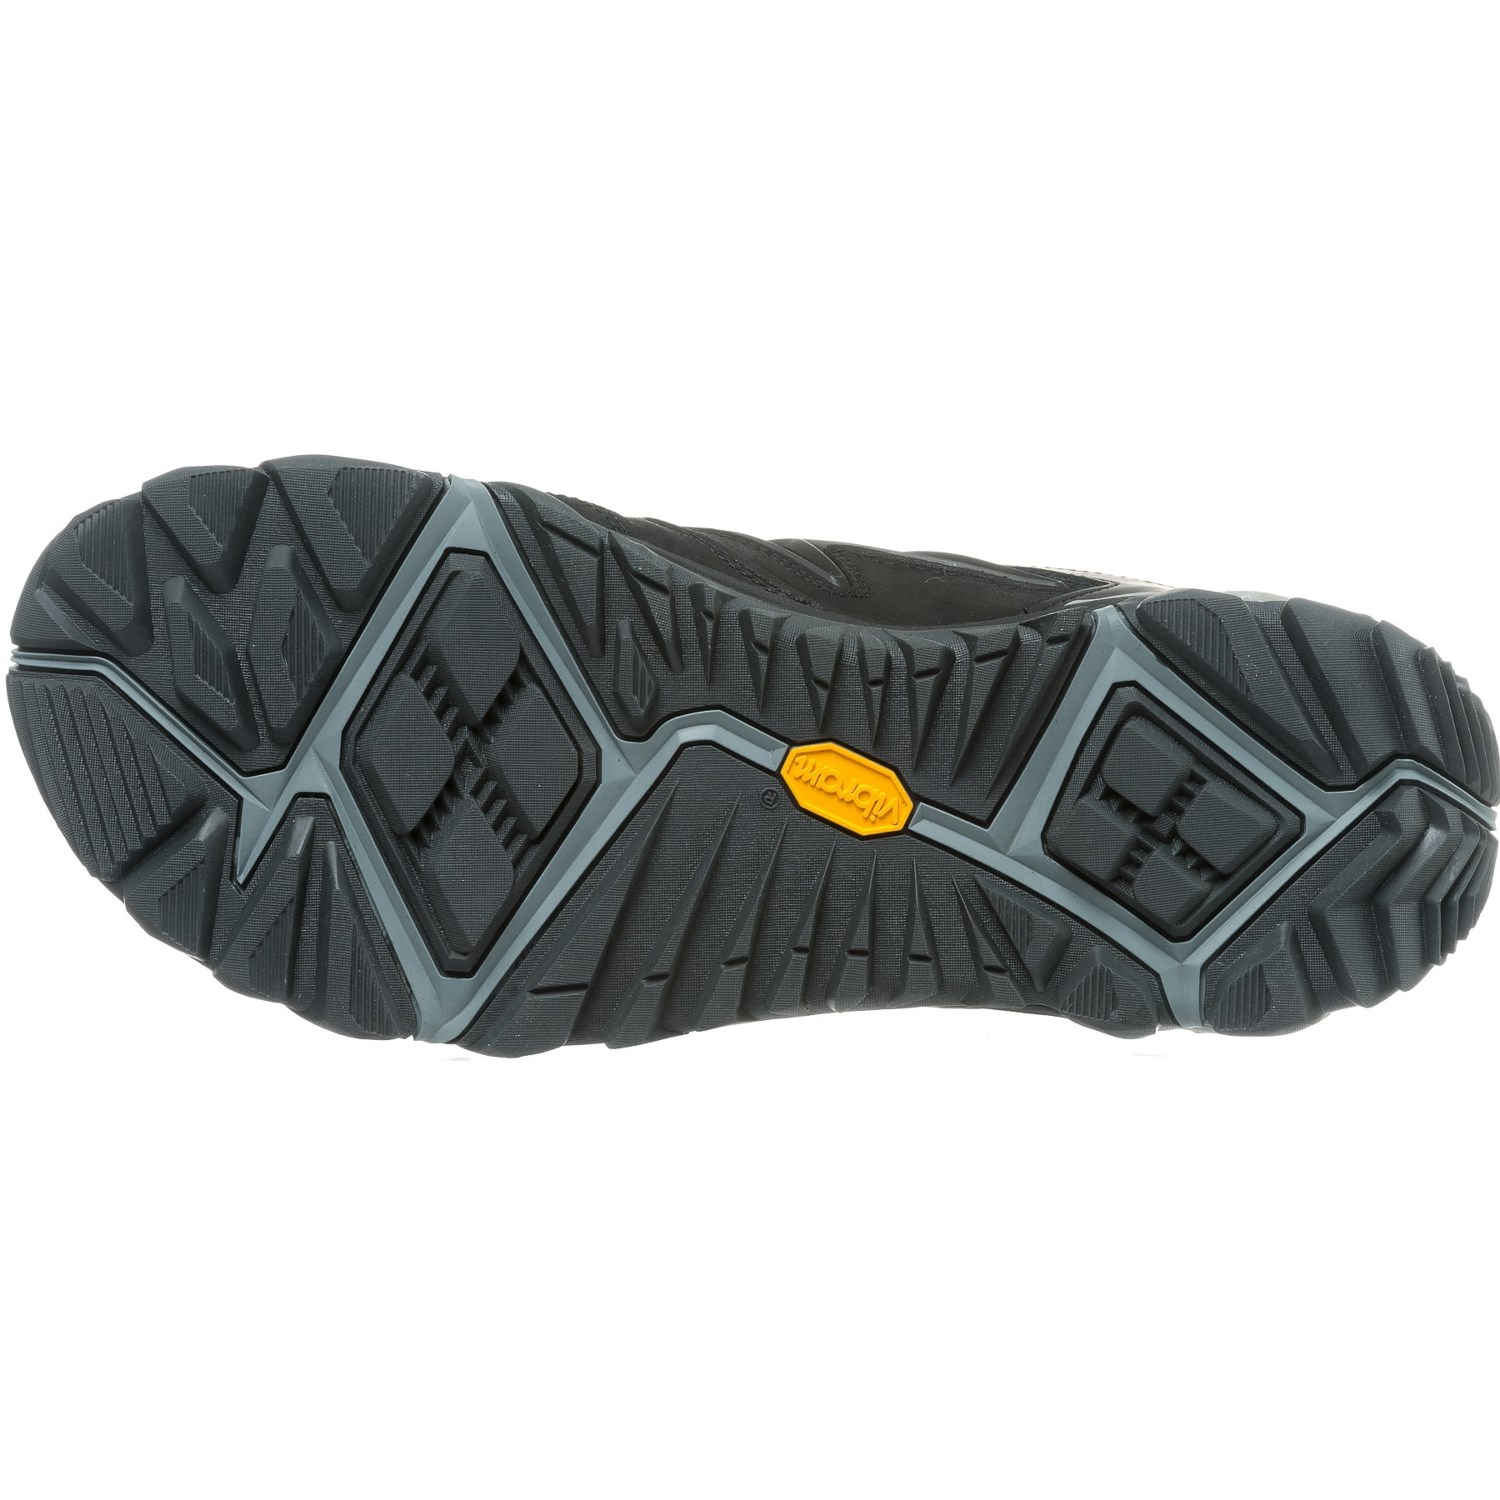 84f00b0eae4 Merrell All Out Blaze 2 Hiking Shoes (For Men)